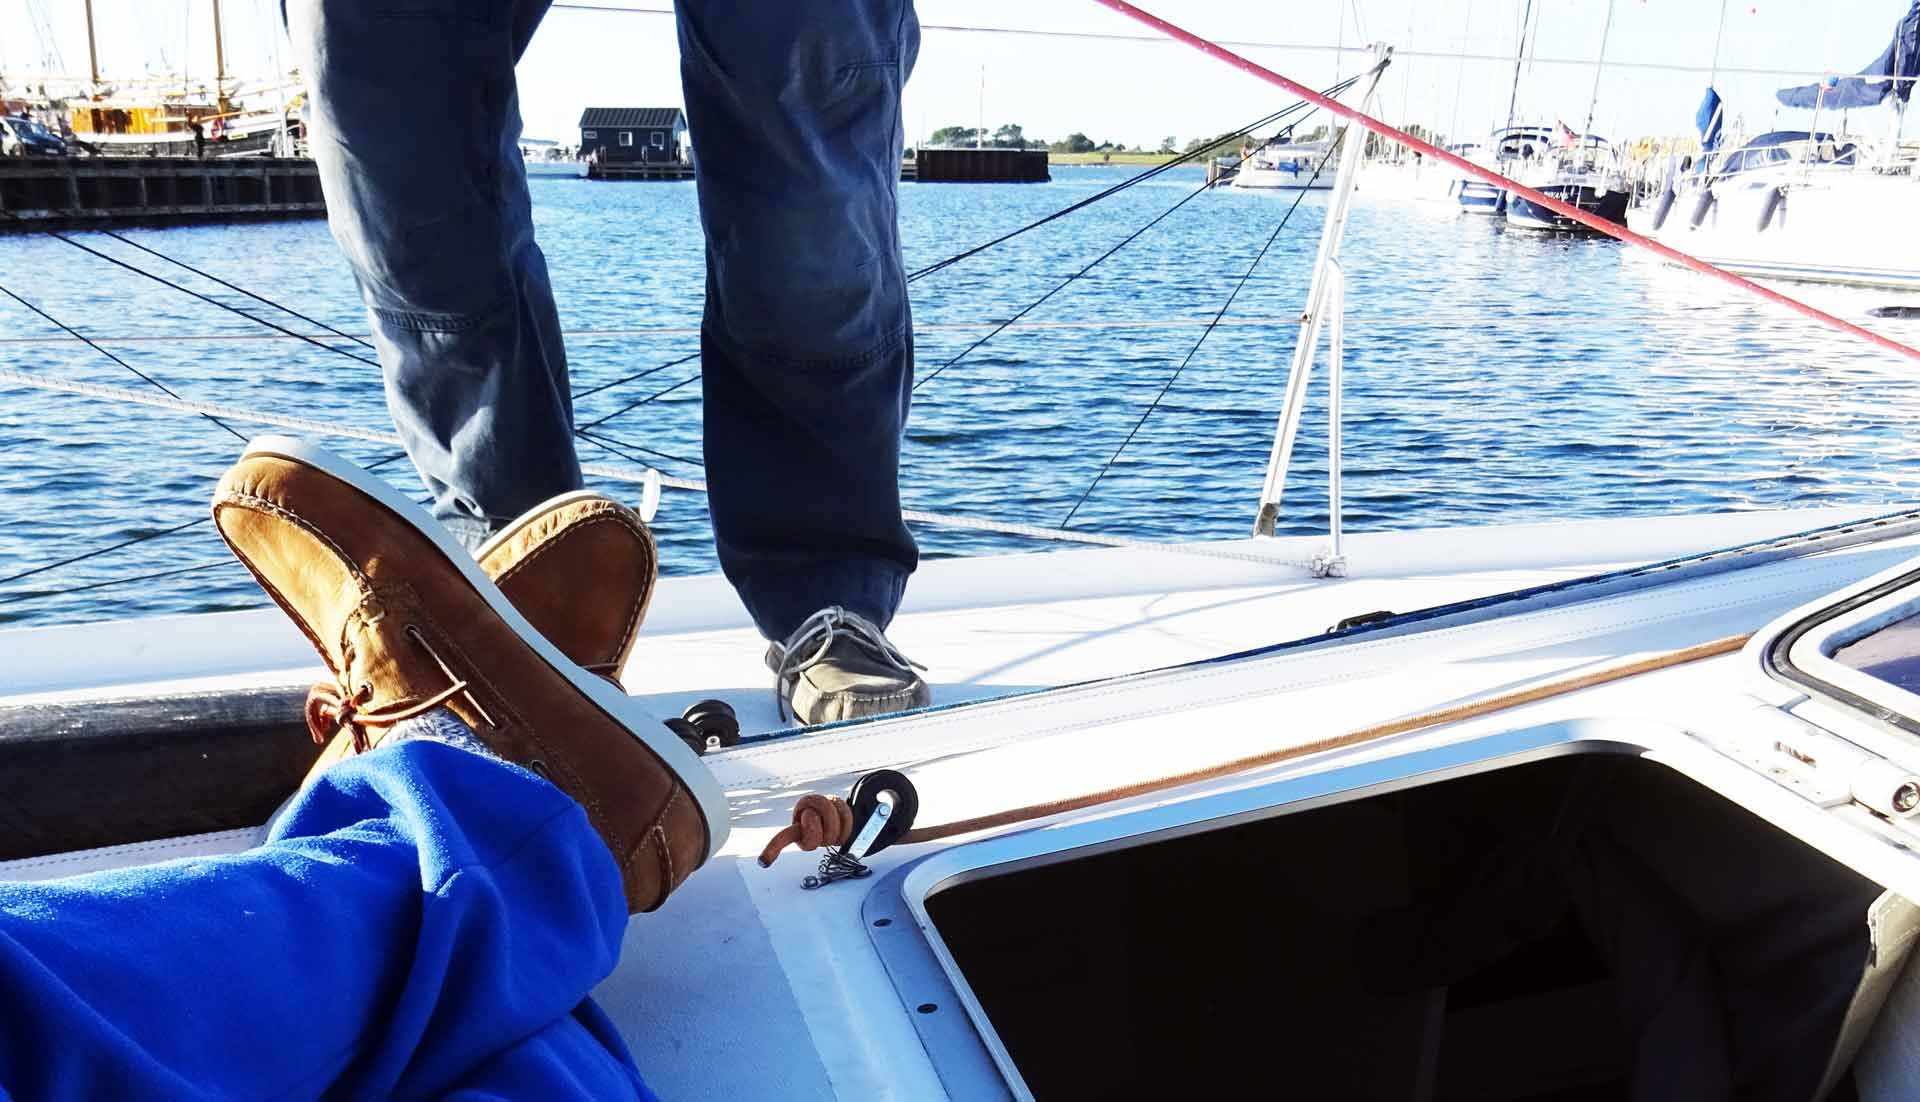 Leisure time, working time: Docksides perform well on a boat, o matter which task